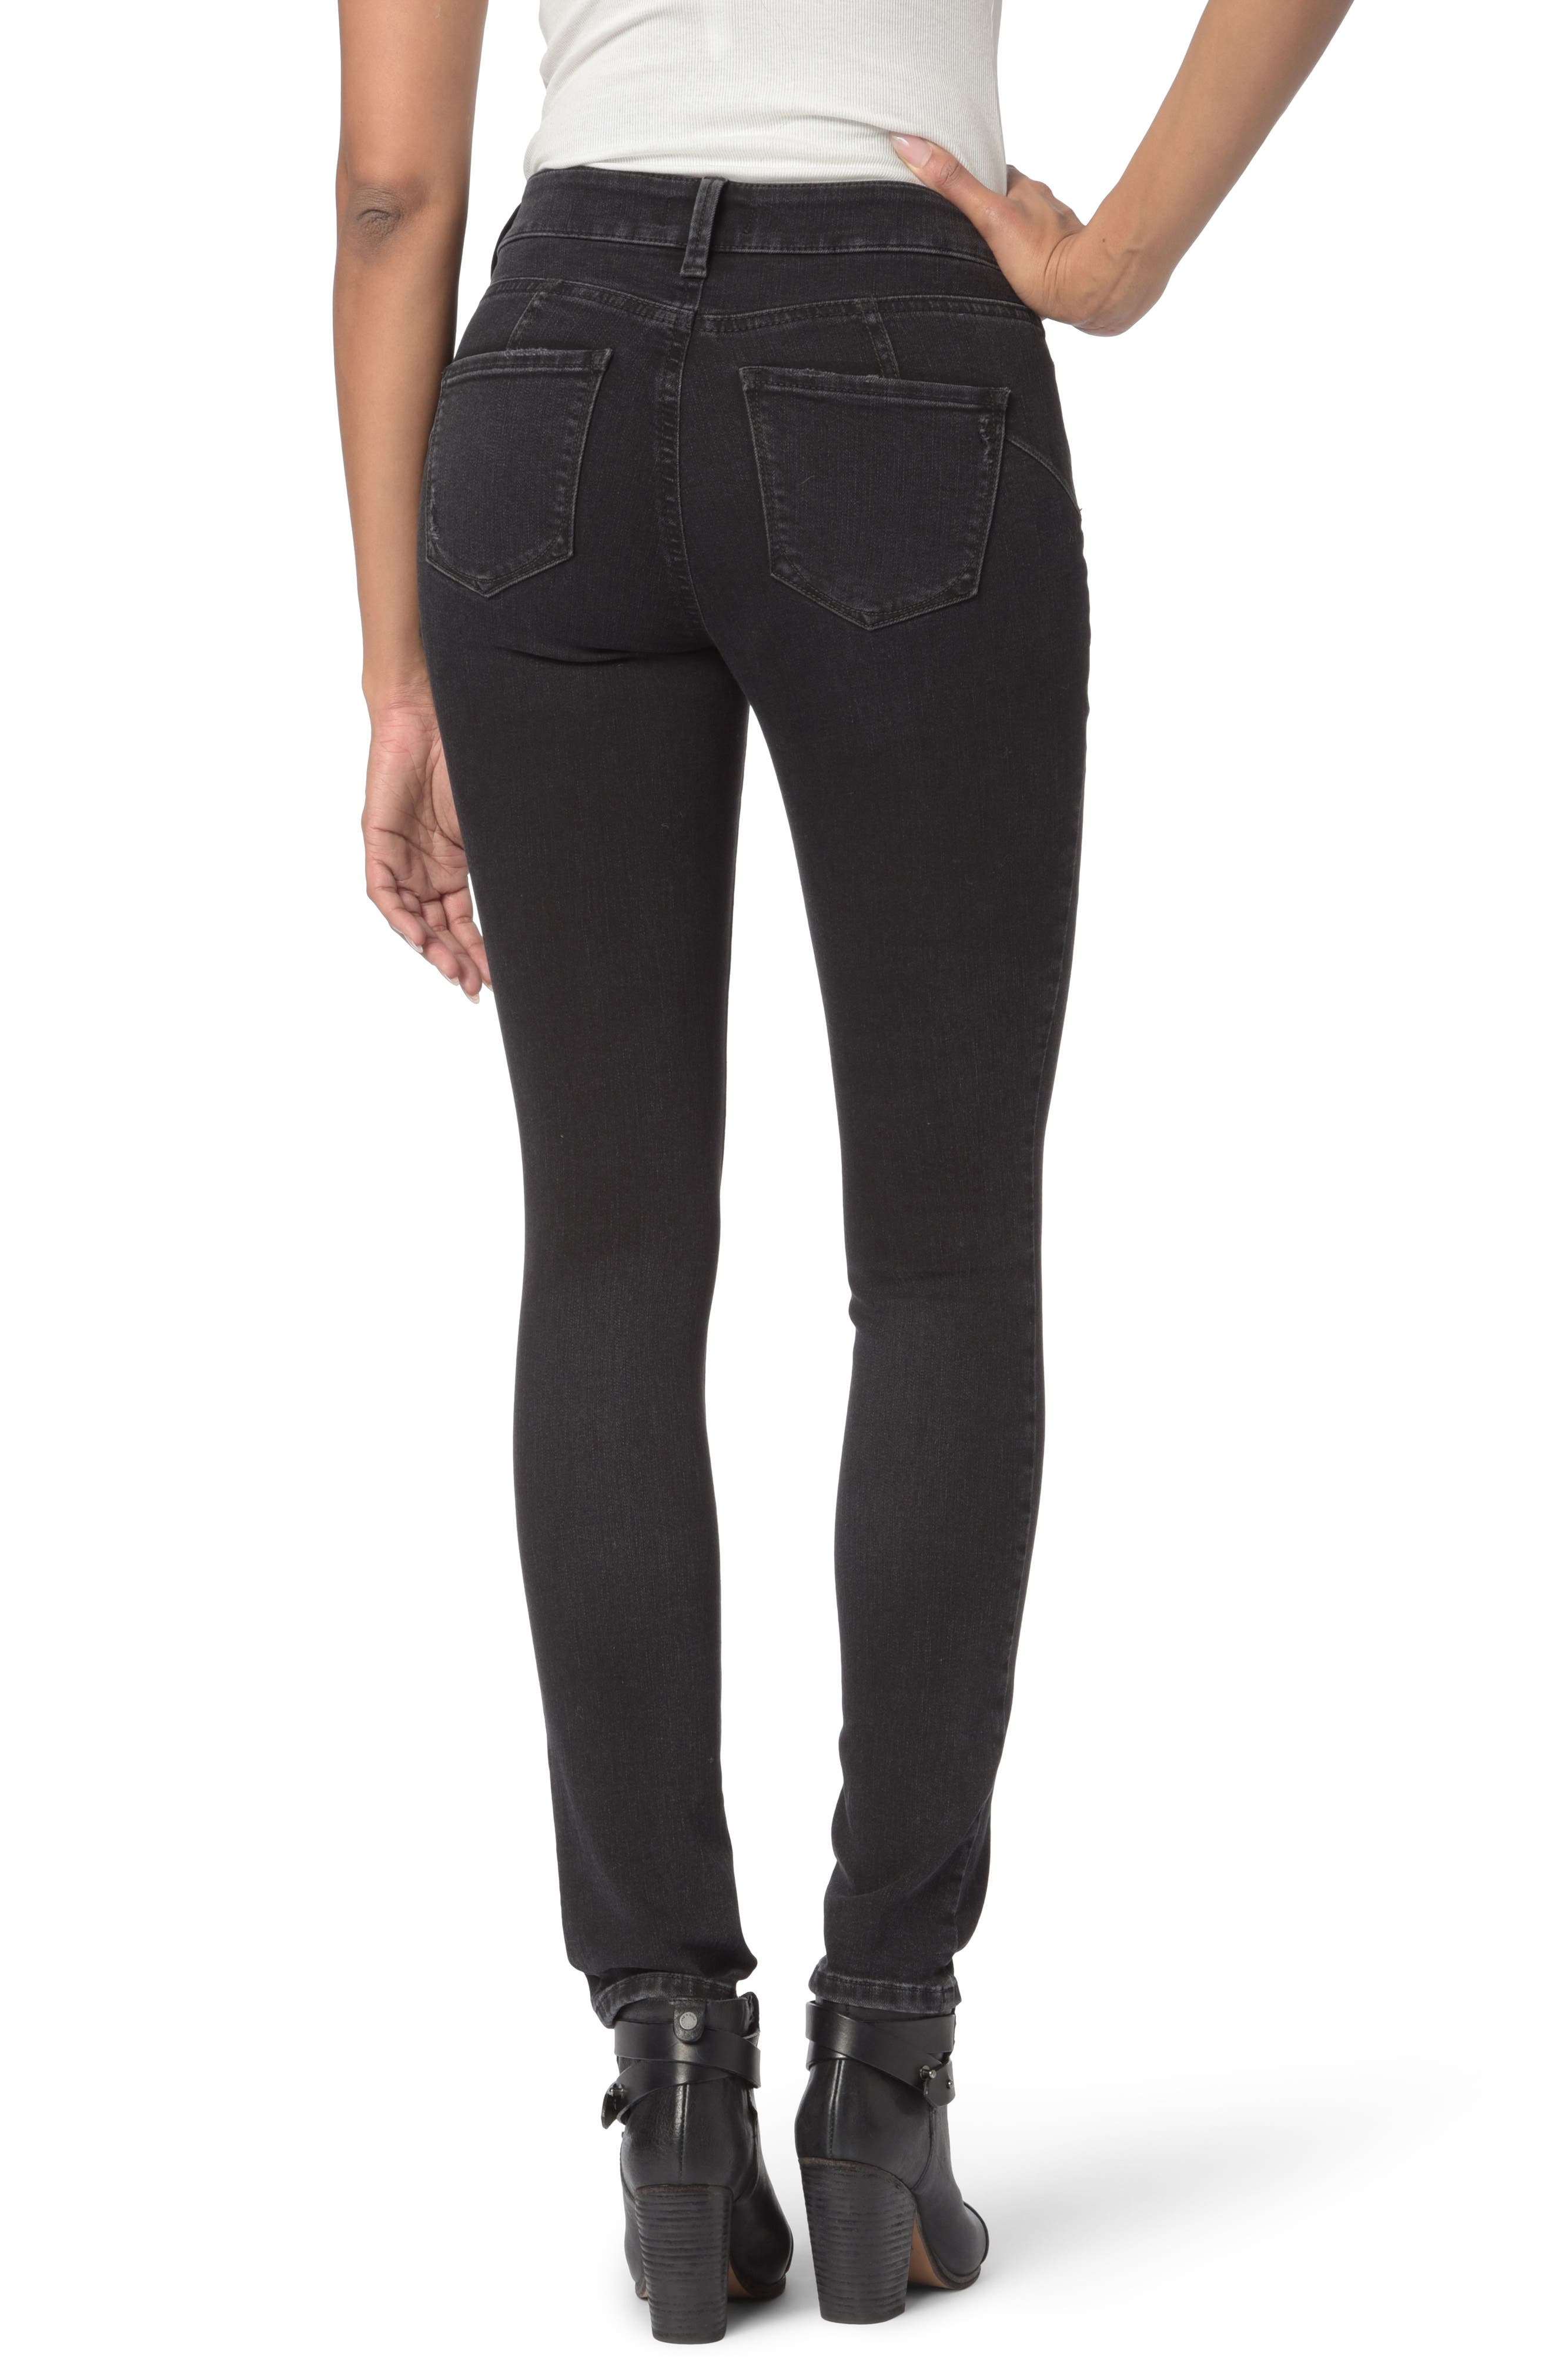 Alina Uplift Stretch Skinny Jeans,                             Alternate thumbnail 2, color,                             CAMPAIGN